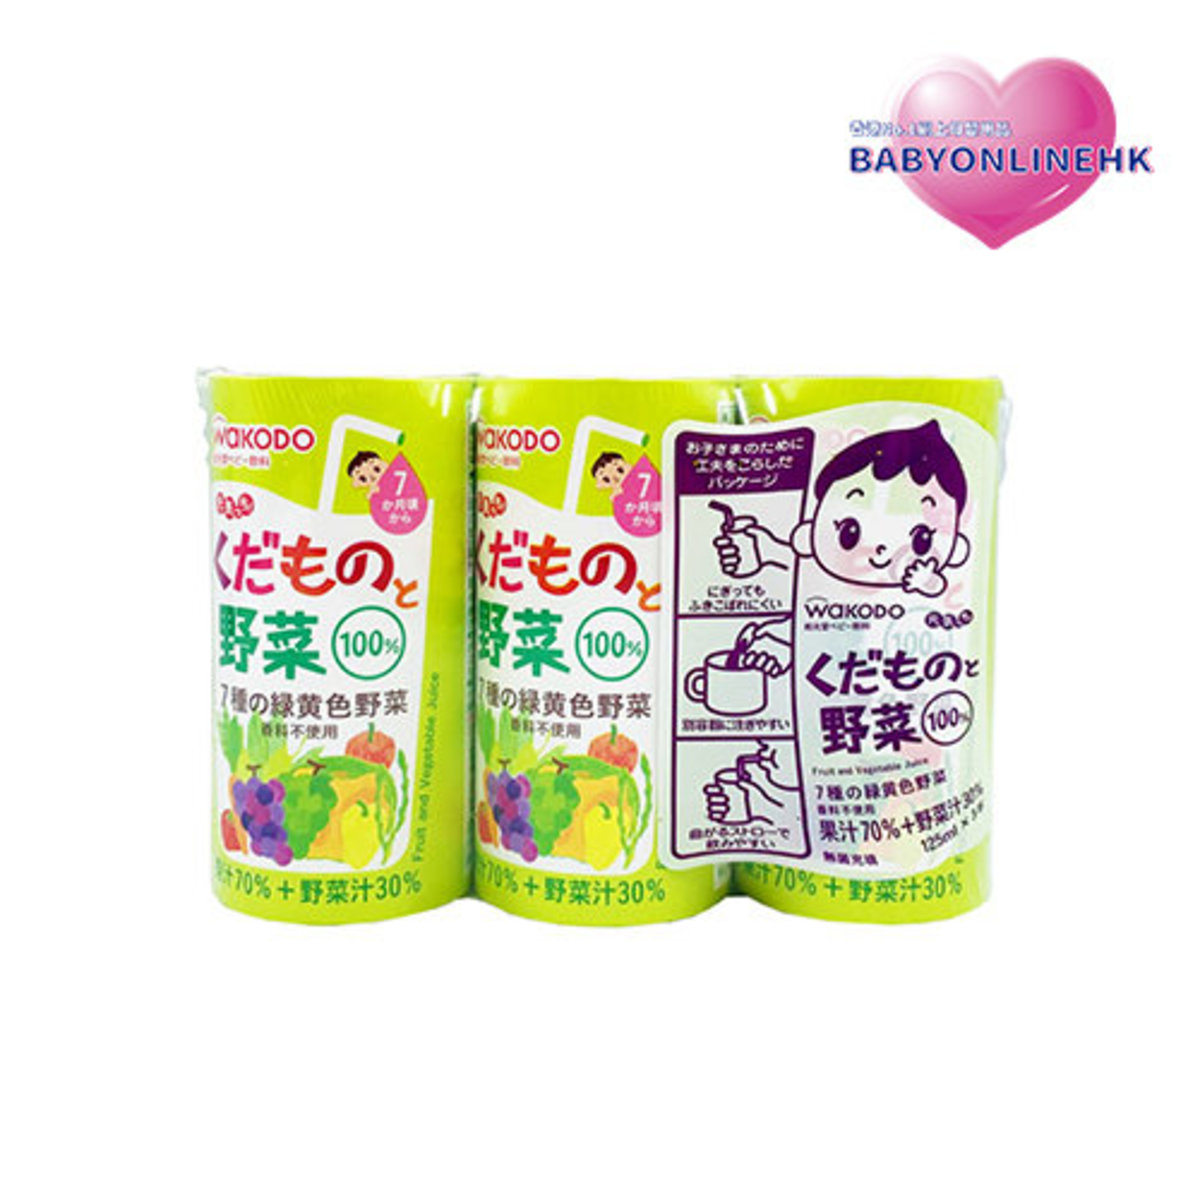 Fruit & Vegetable Juice #From 7 months 125ml x3 (Parallel Imports Product)